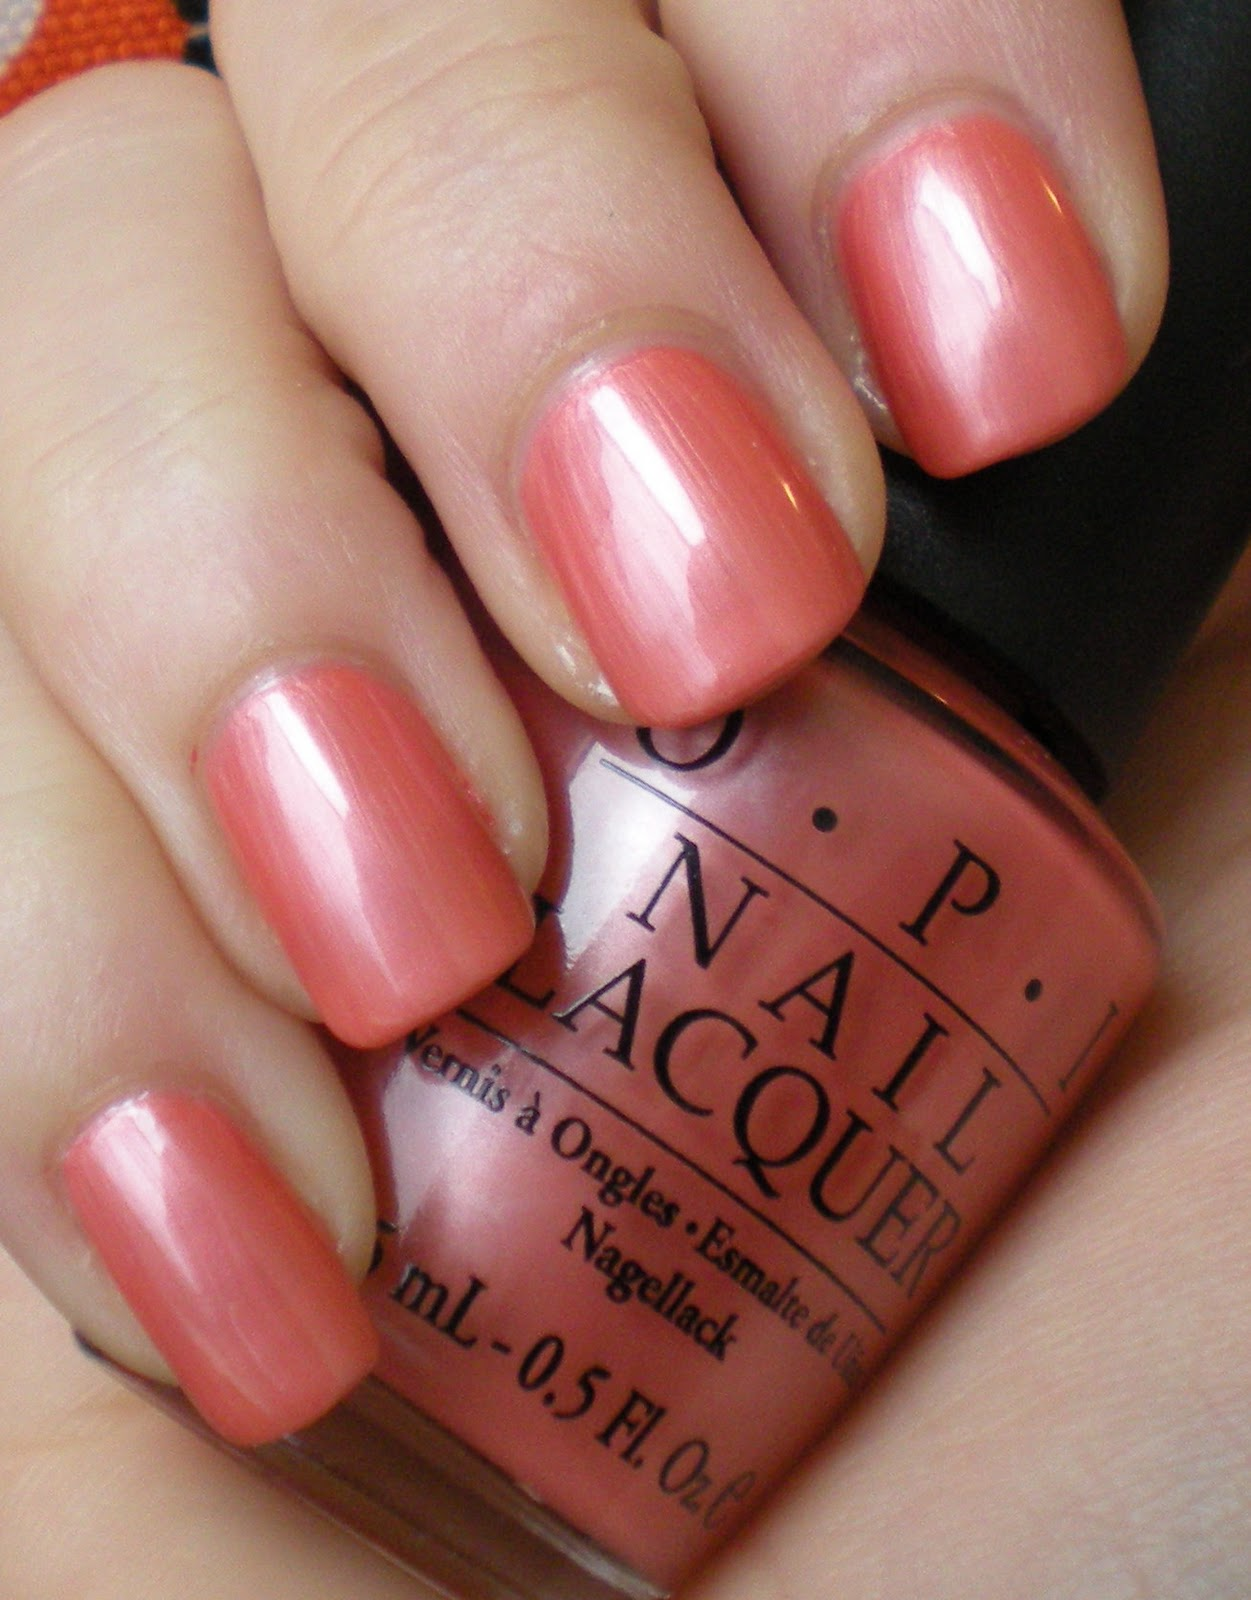 Shades of Neutral Me: OPI Melon of Troy